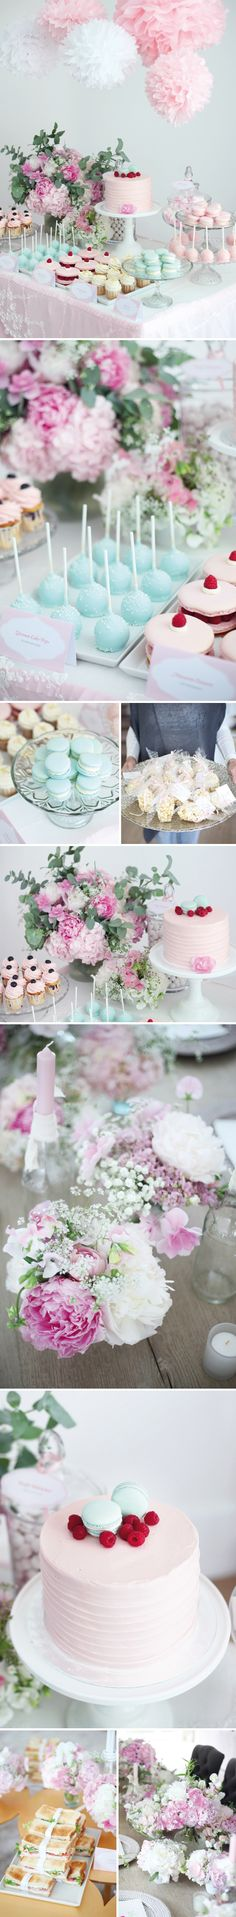 Babyshower_Zuckermonarchie_Hamburg_CandyBuffet